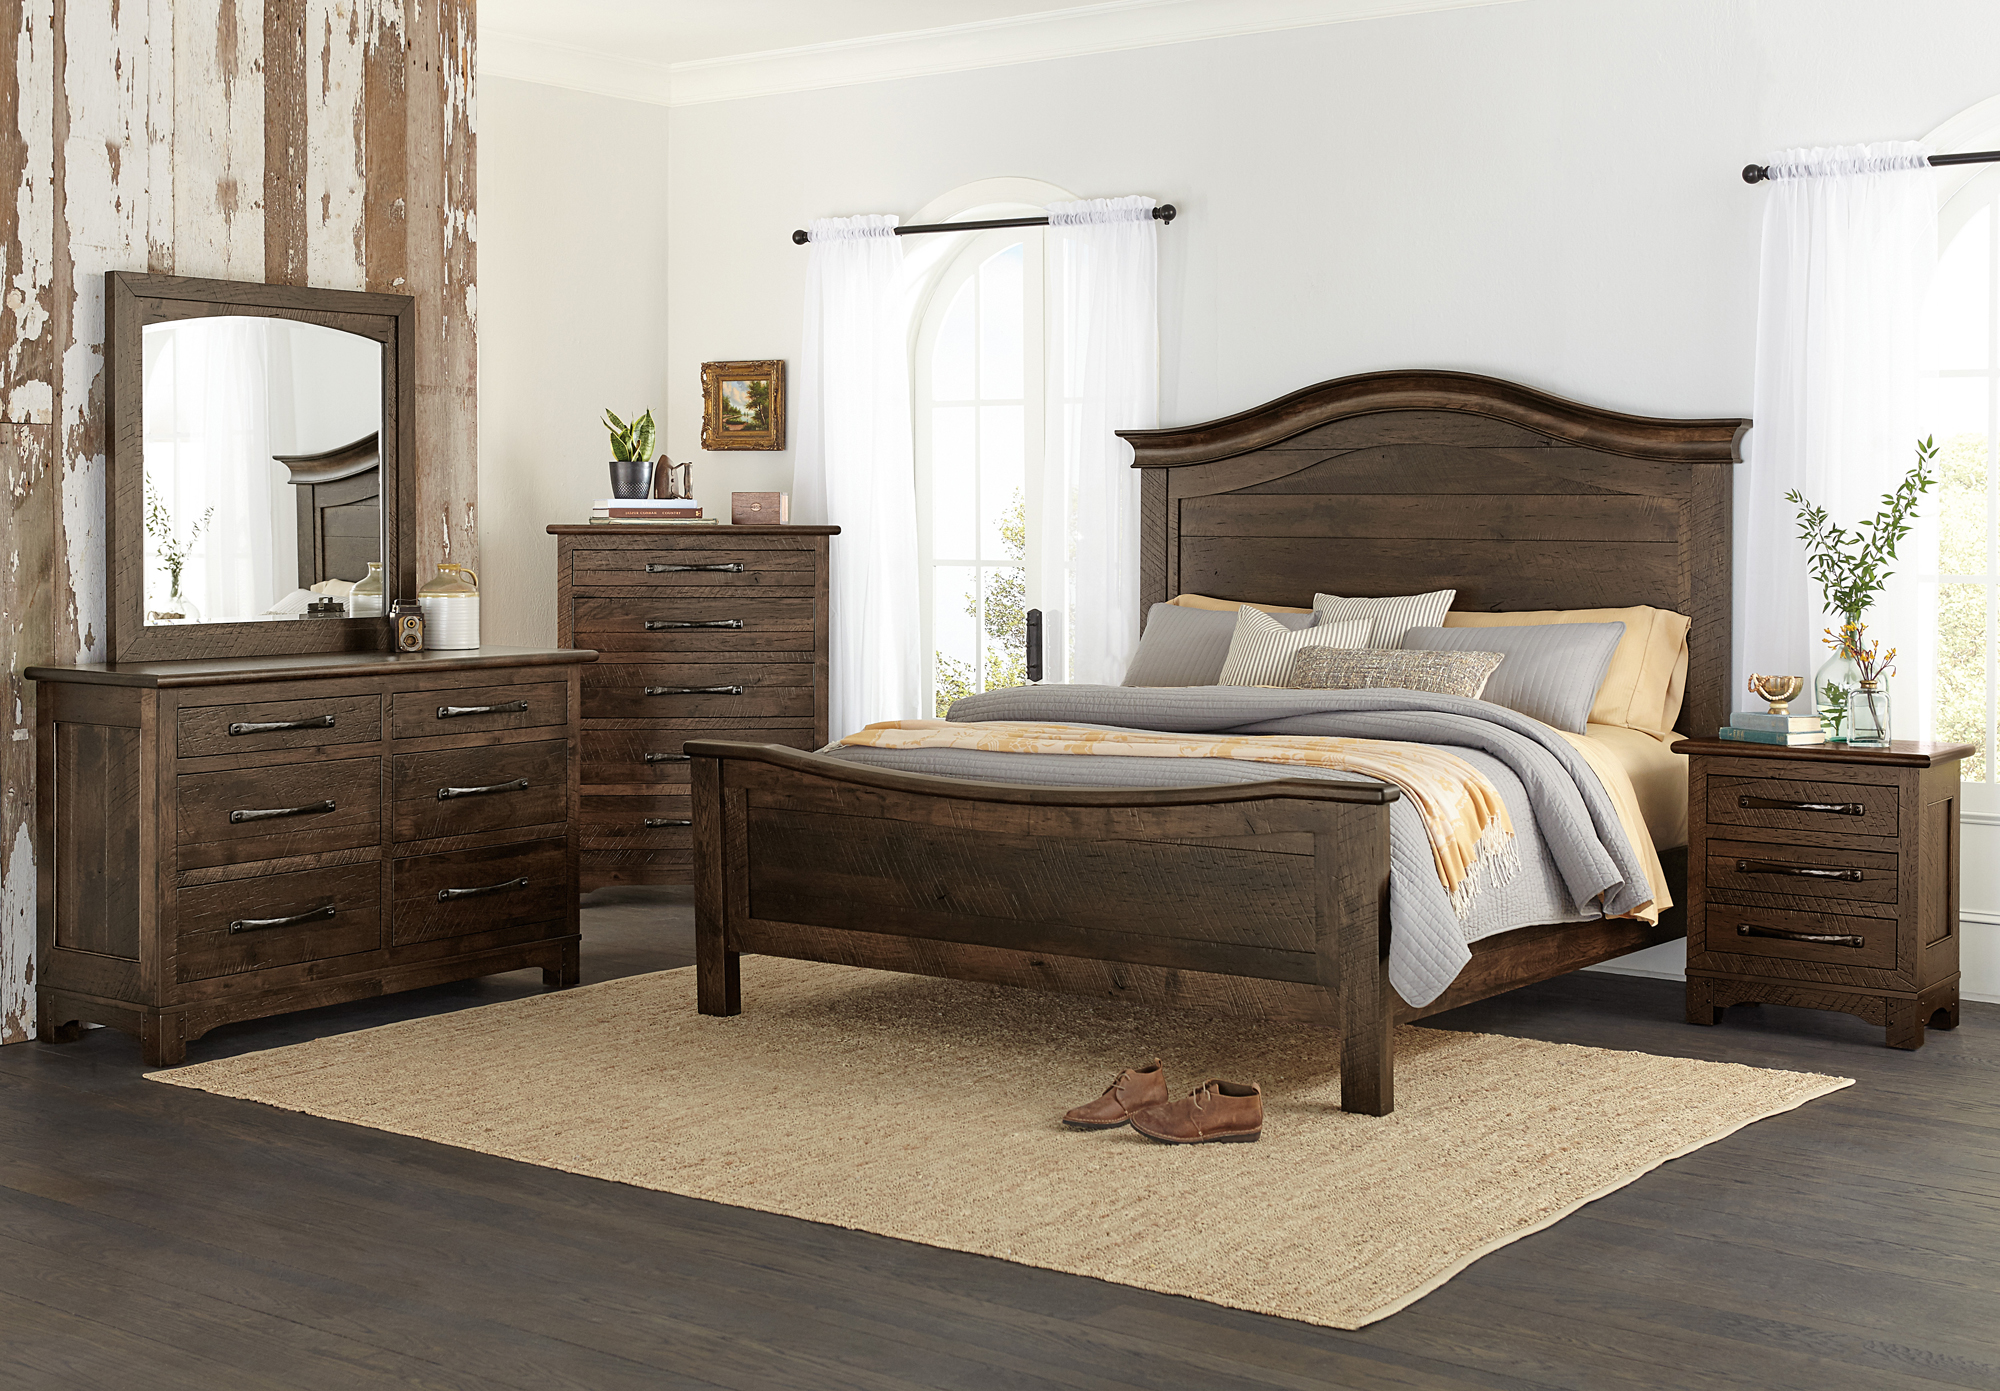 farmhouse signature bedroom set | amish farmhouse